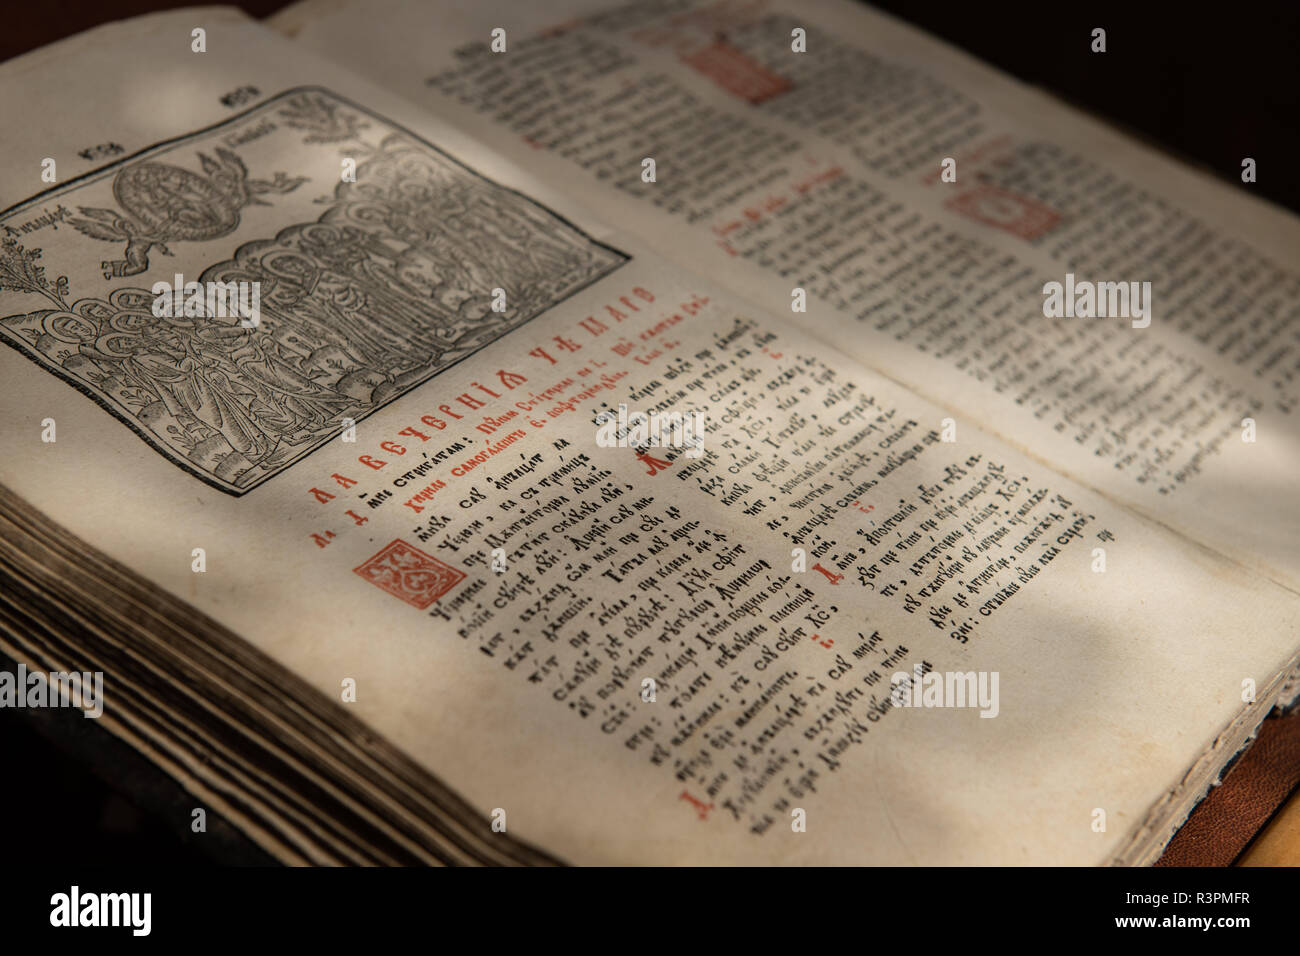 Close up of old Christian manuscript written in Cyrillic on church pulpit. - Stock Image